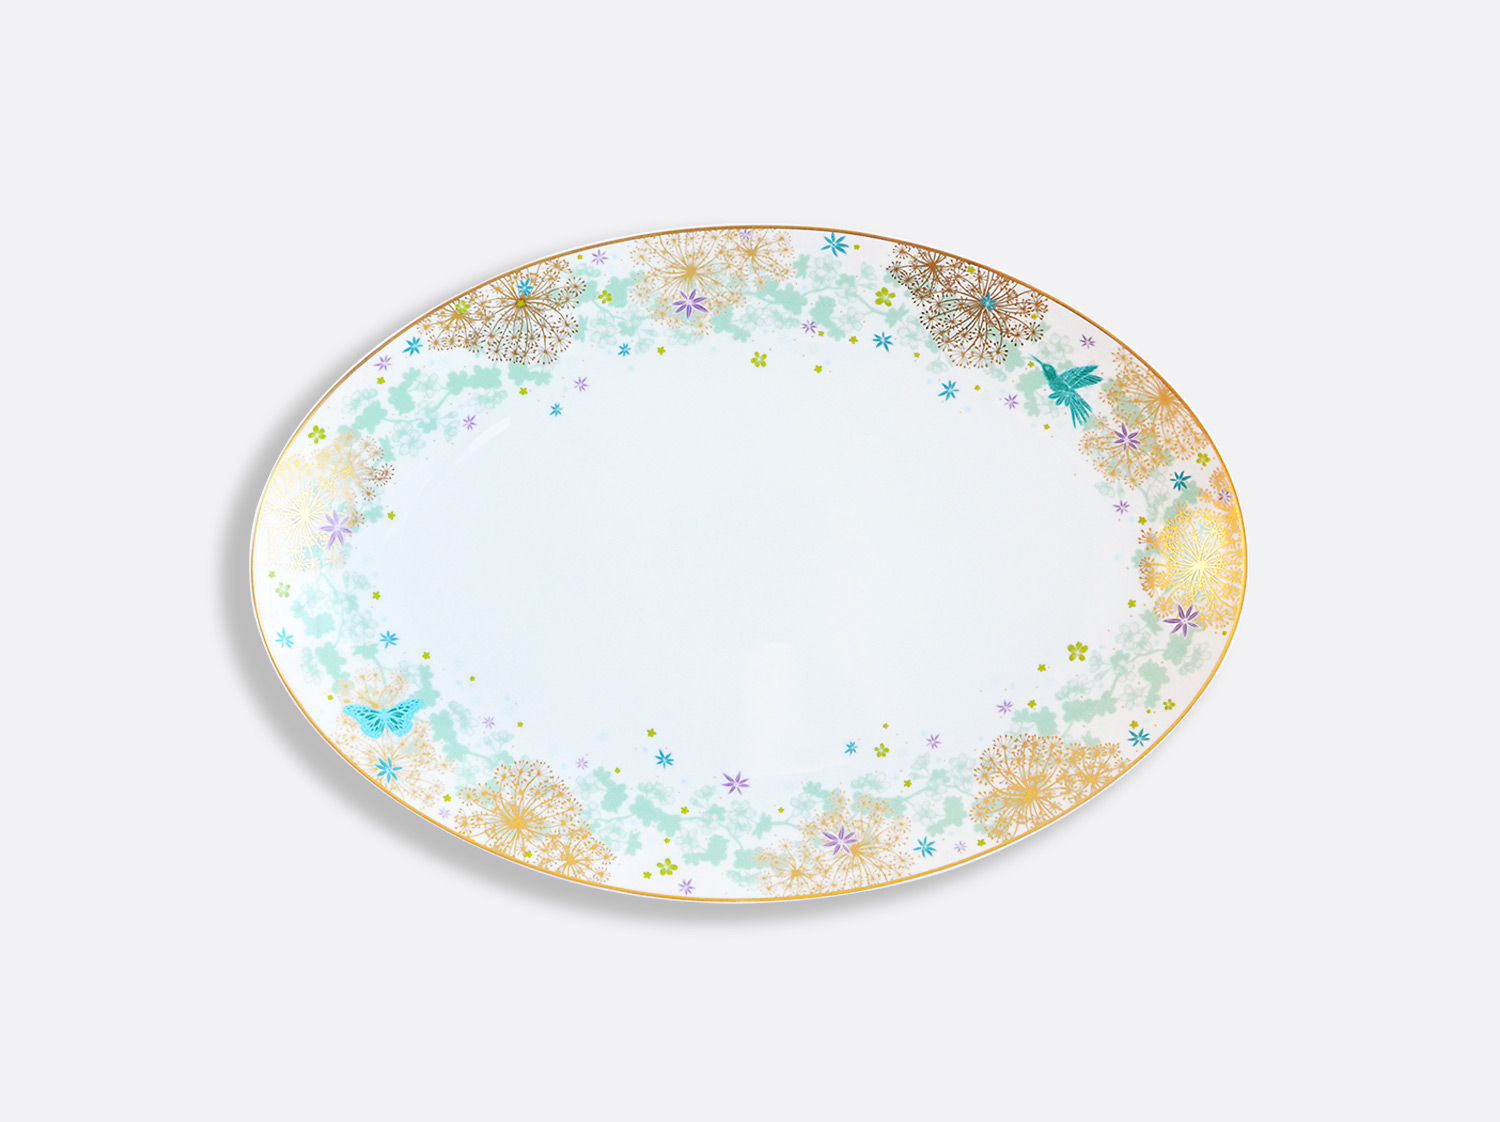 China Oval platter 38 cm of the collection FÉERIE - MICHAËL CAILLOUX | Bernardaud